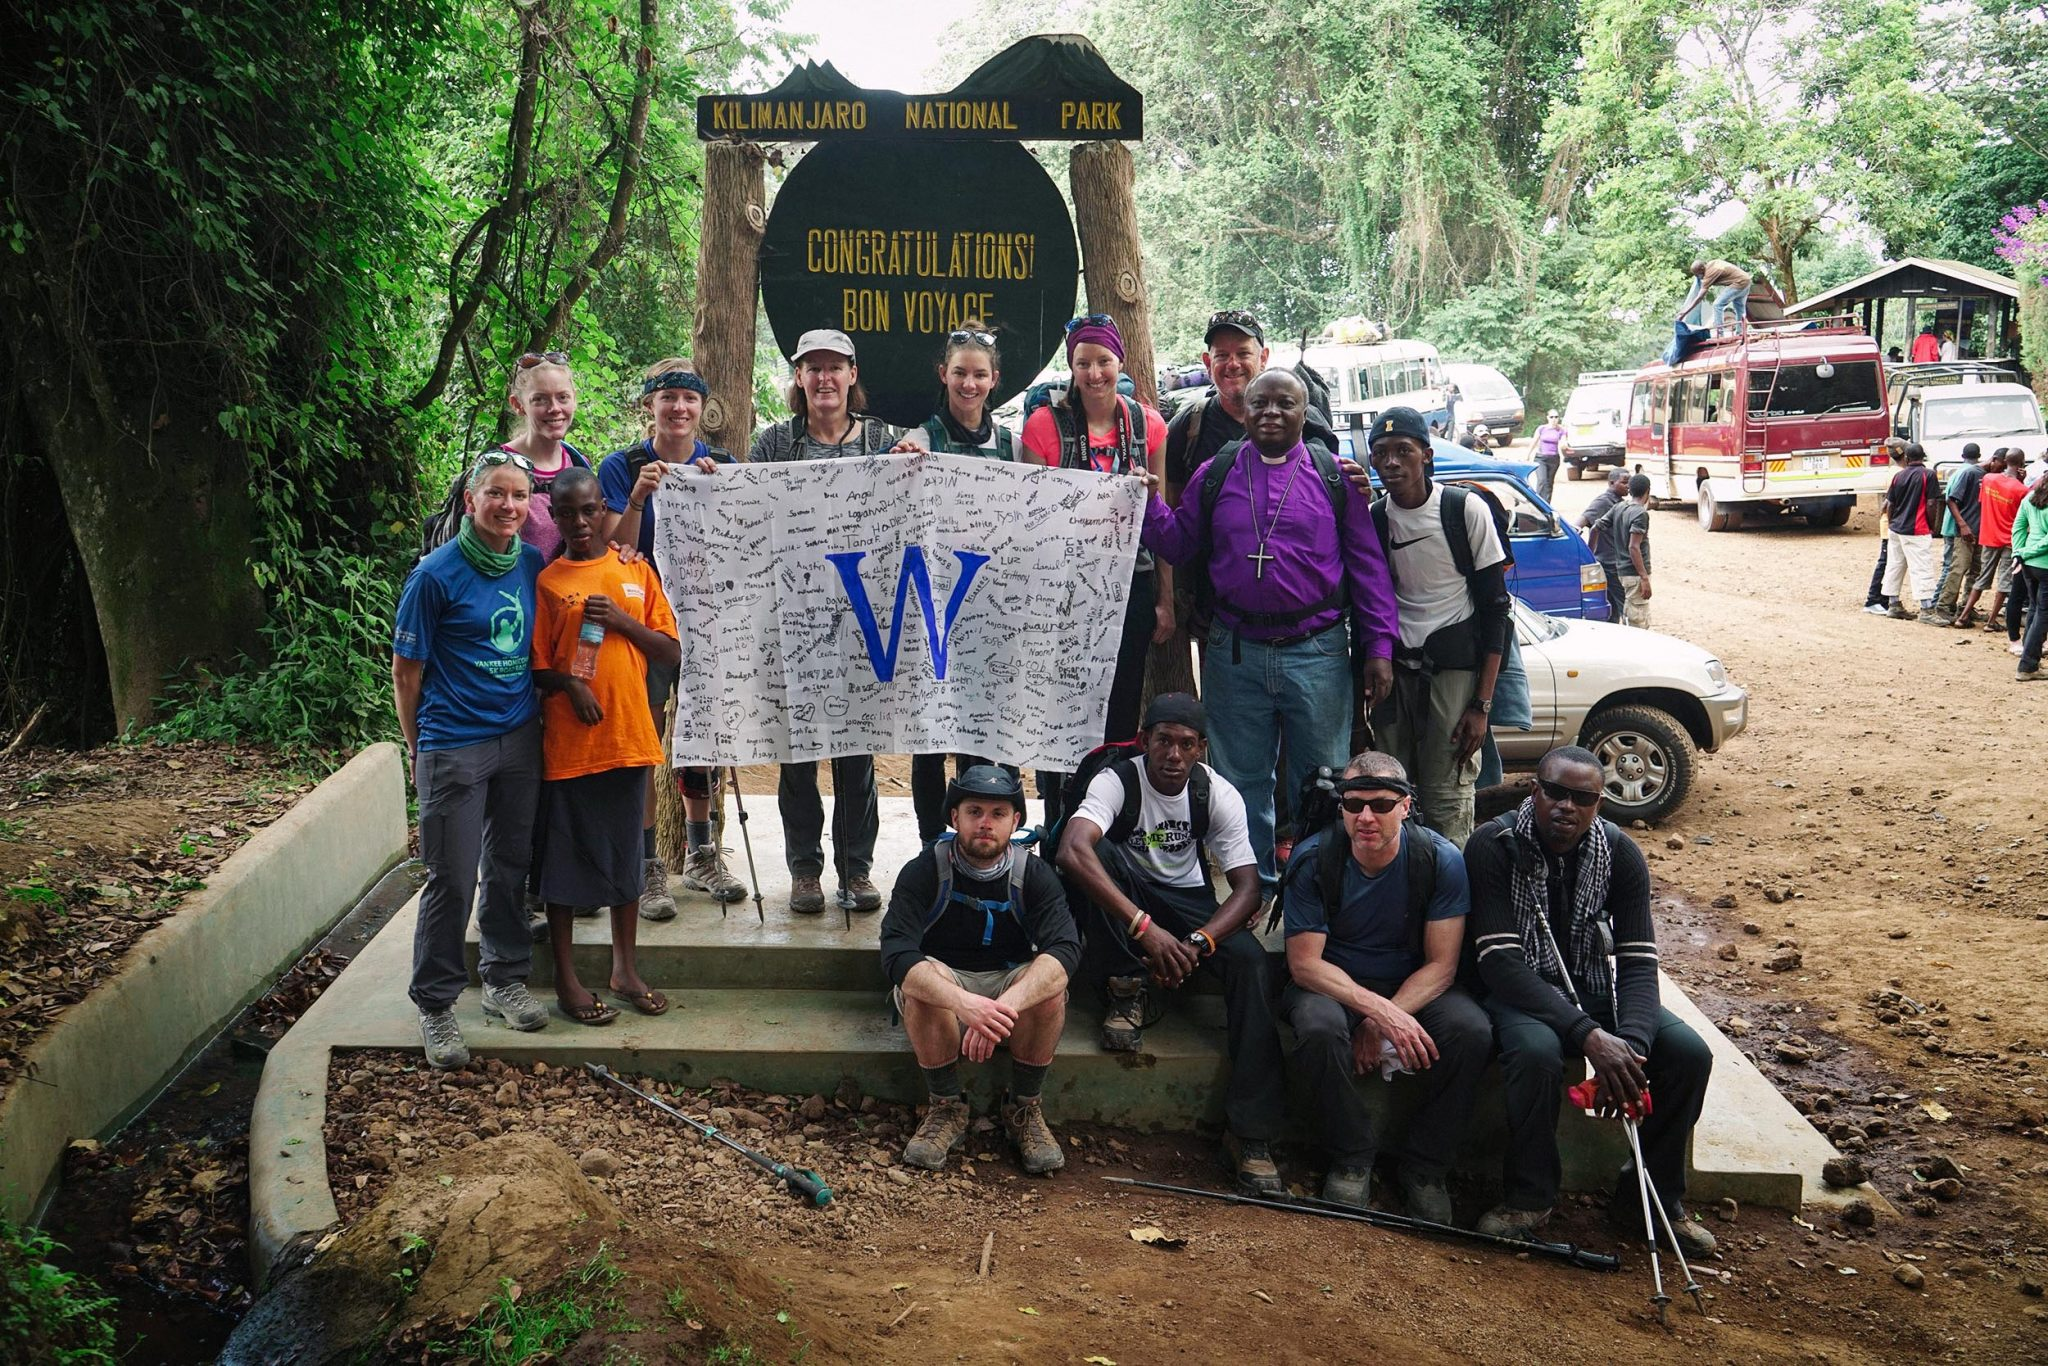 """14 hikers standing together and holding a banner with a large """"W"""" in the center."""